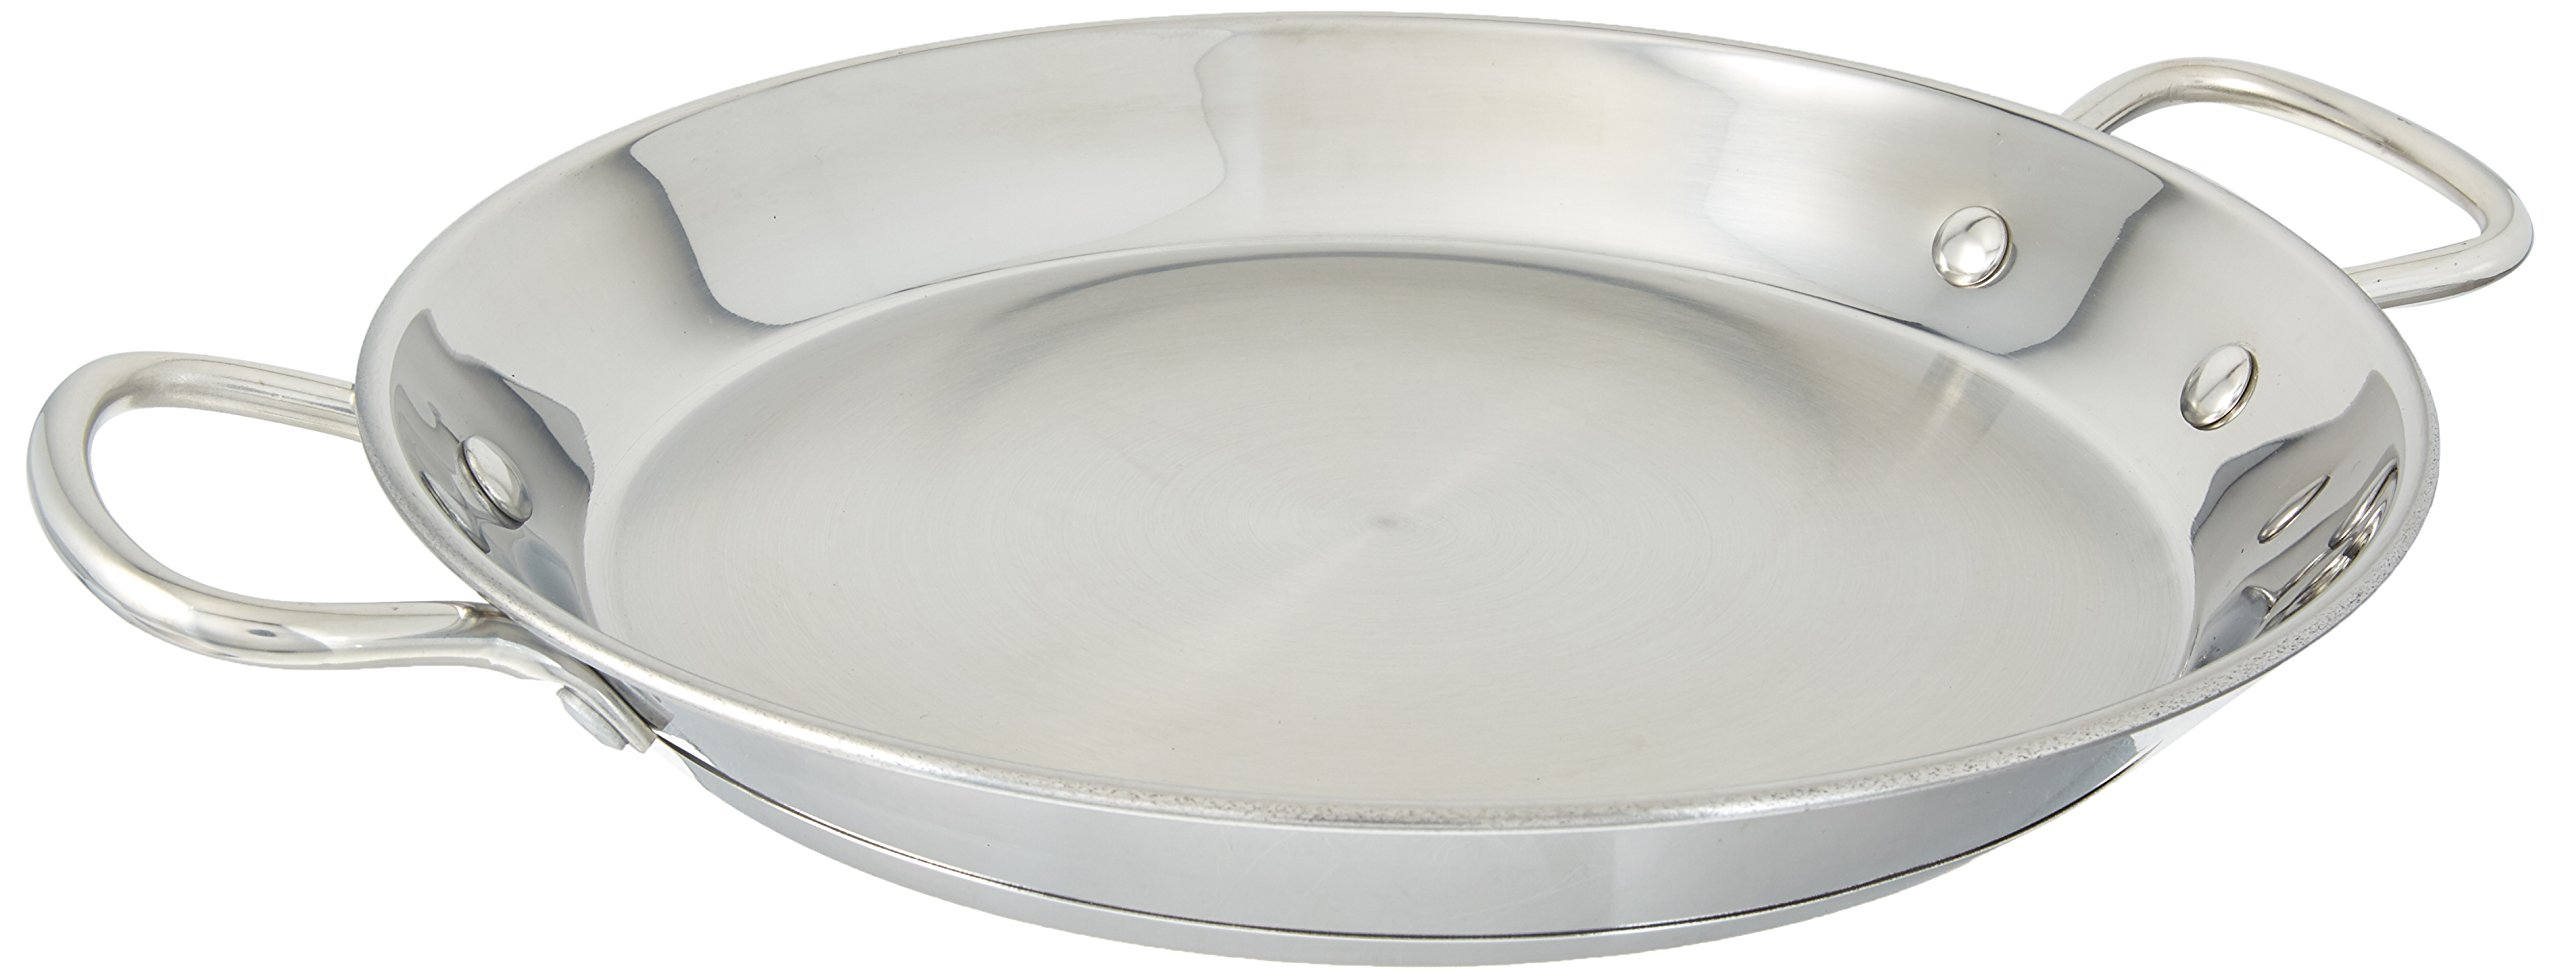 Guison 070988 Stainless Steel Paella Pan